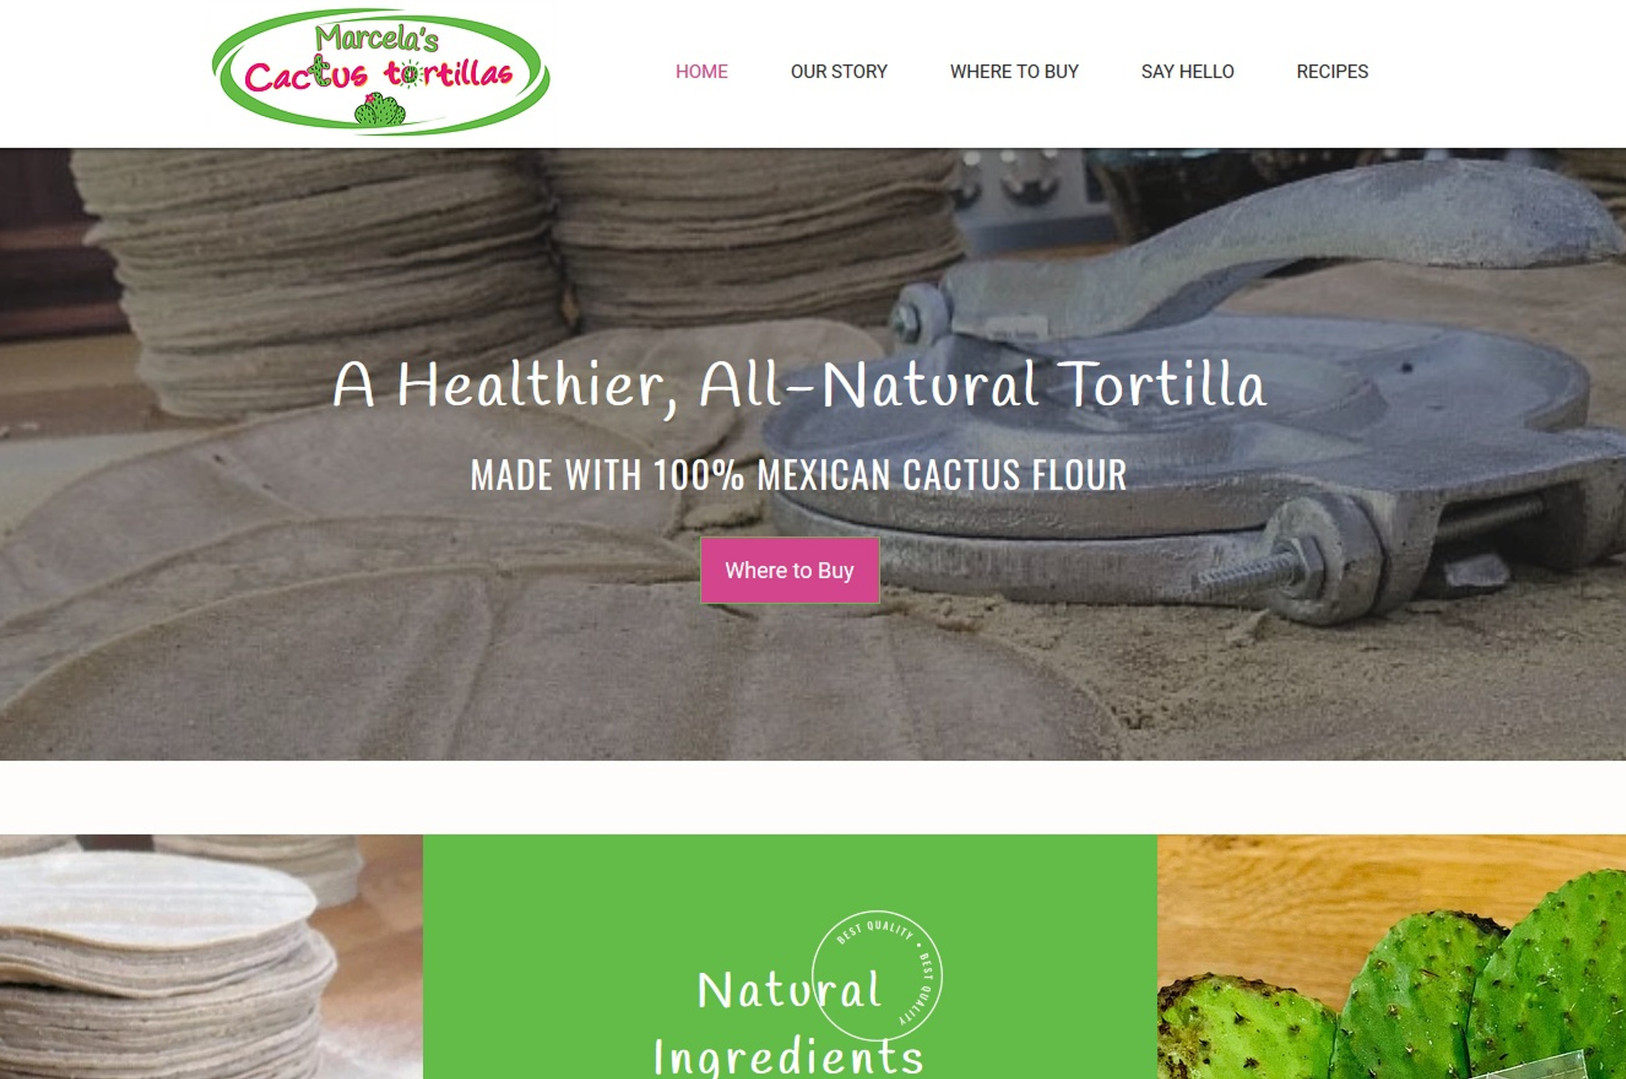 Marcella's Cactus Tortillas_website.jpg